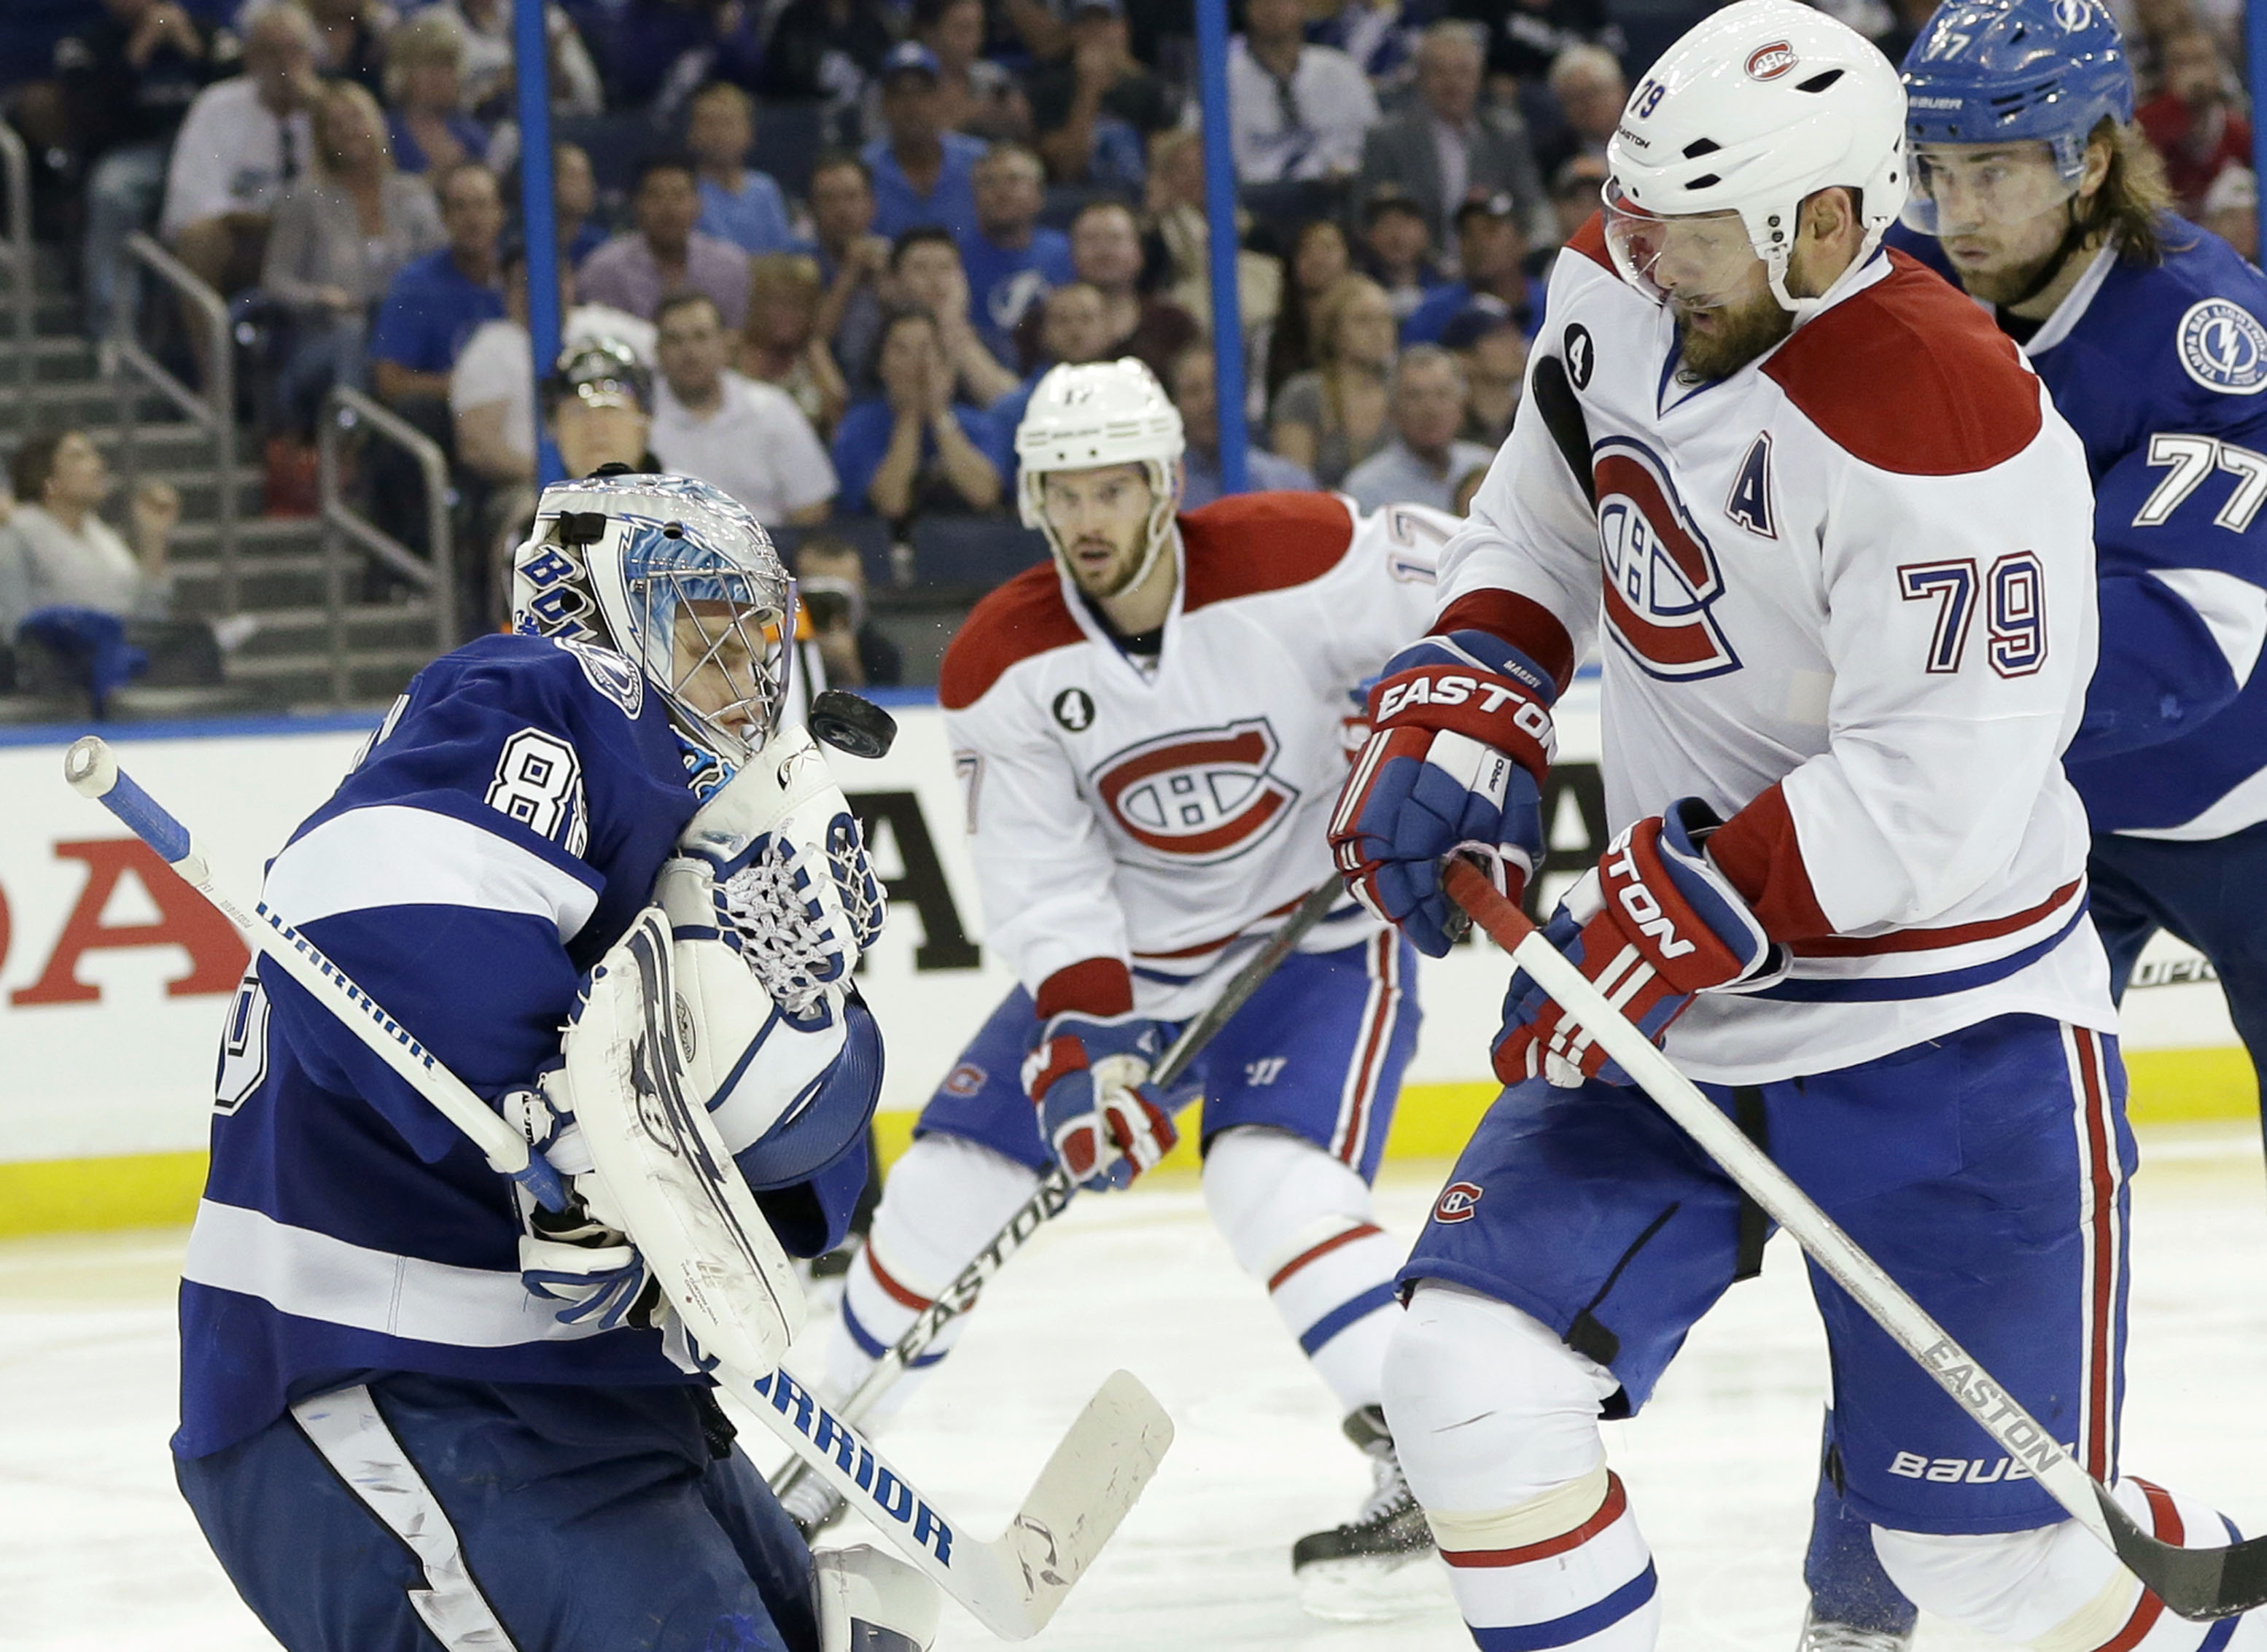 Tampa Bay Lightning goalie Andrei Vasilevskiy, left, of Russia, makes a save against Montreal Canadiens defenseman Andrei Markov, right, of Russia, during third period of Game 4 NHL second round playoff hockey action, Thursday, May 7, 2015, in Tampa, Fla.